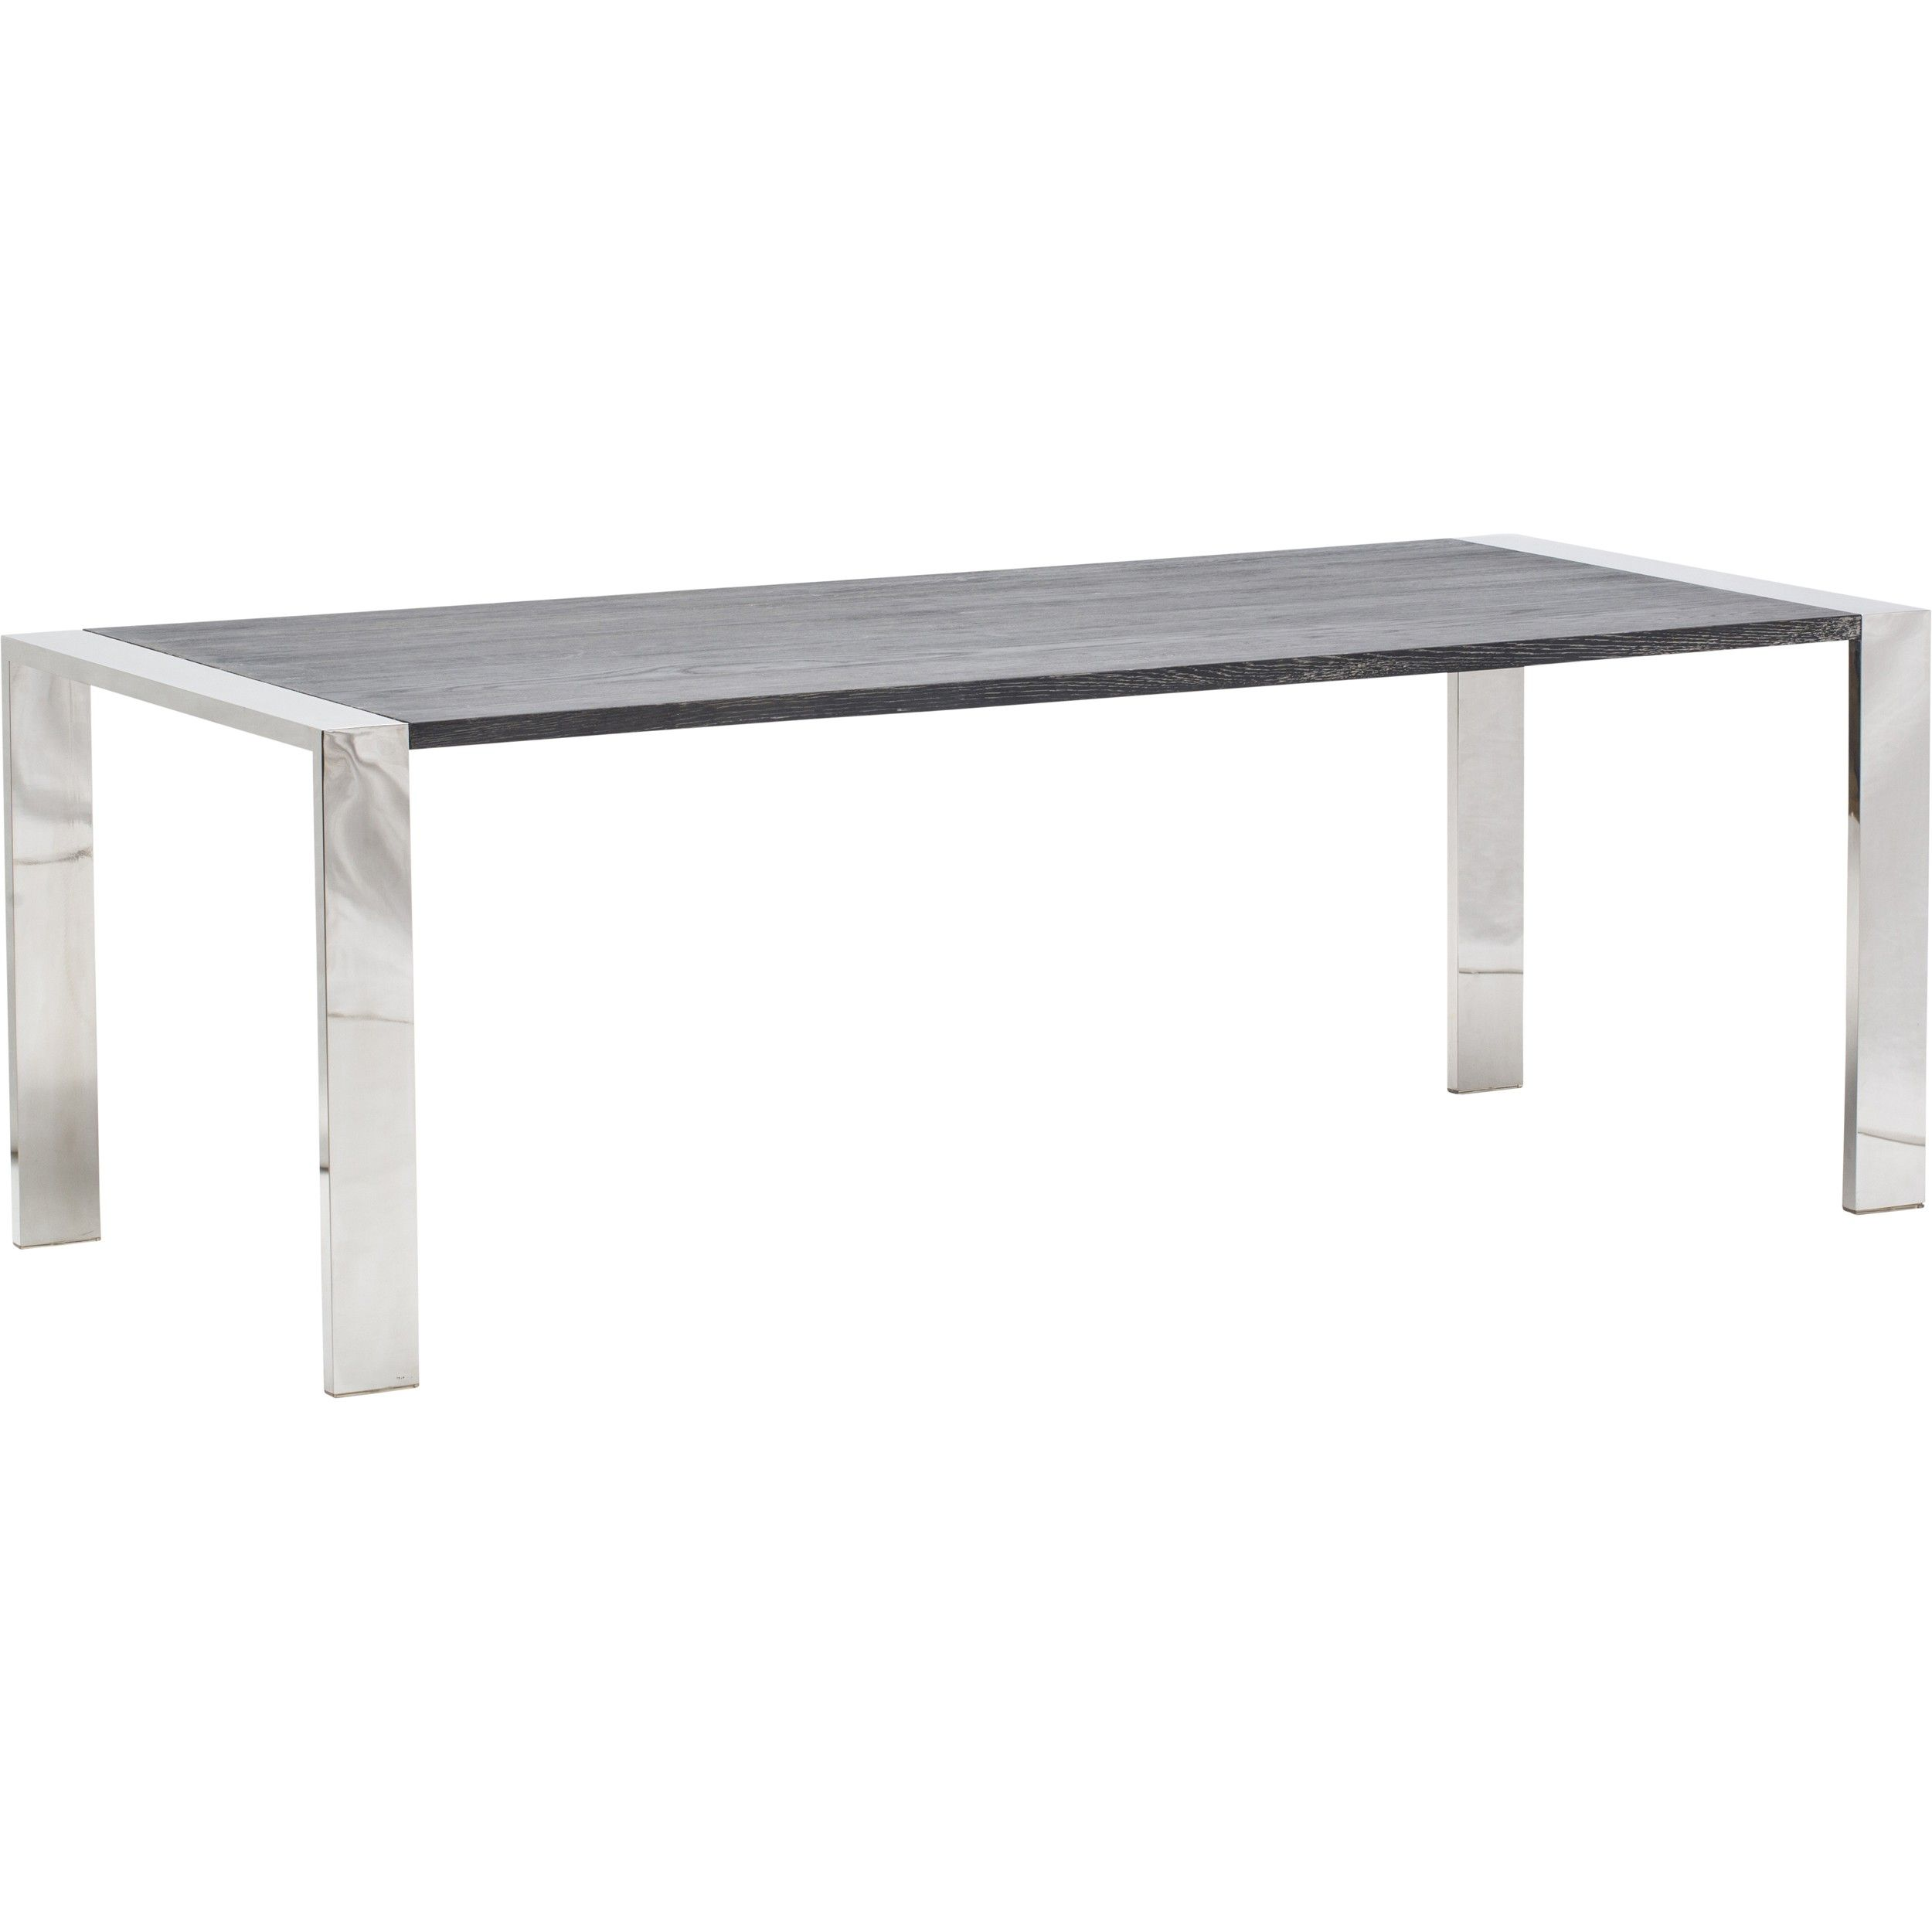 Dalton Dining Table Grey Oak 1 569 00